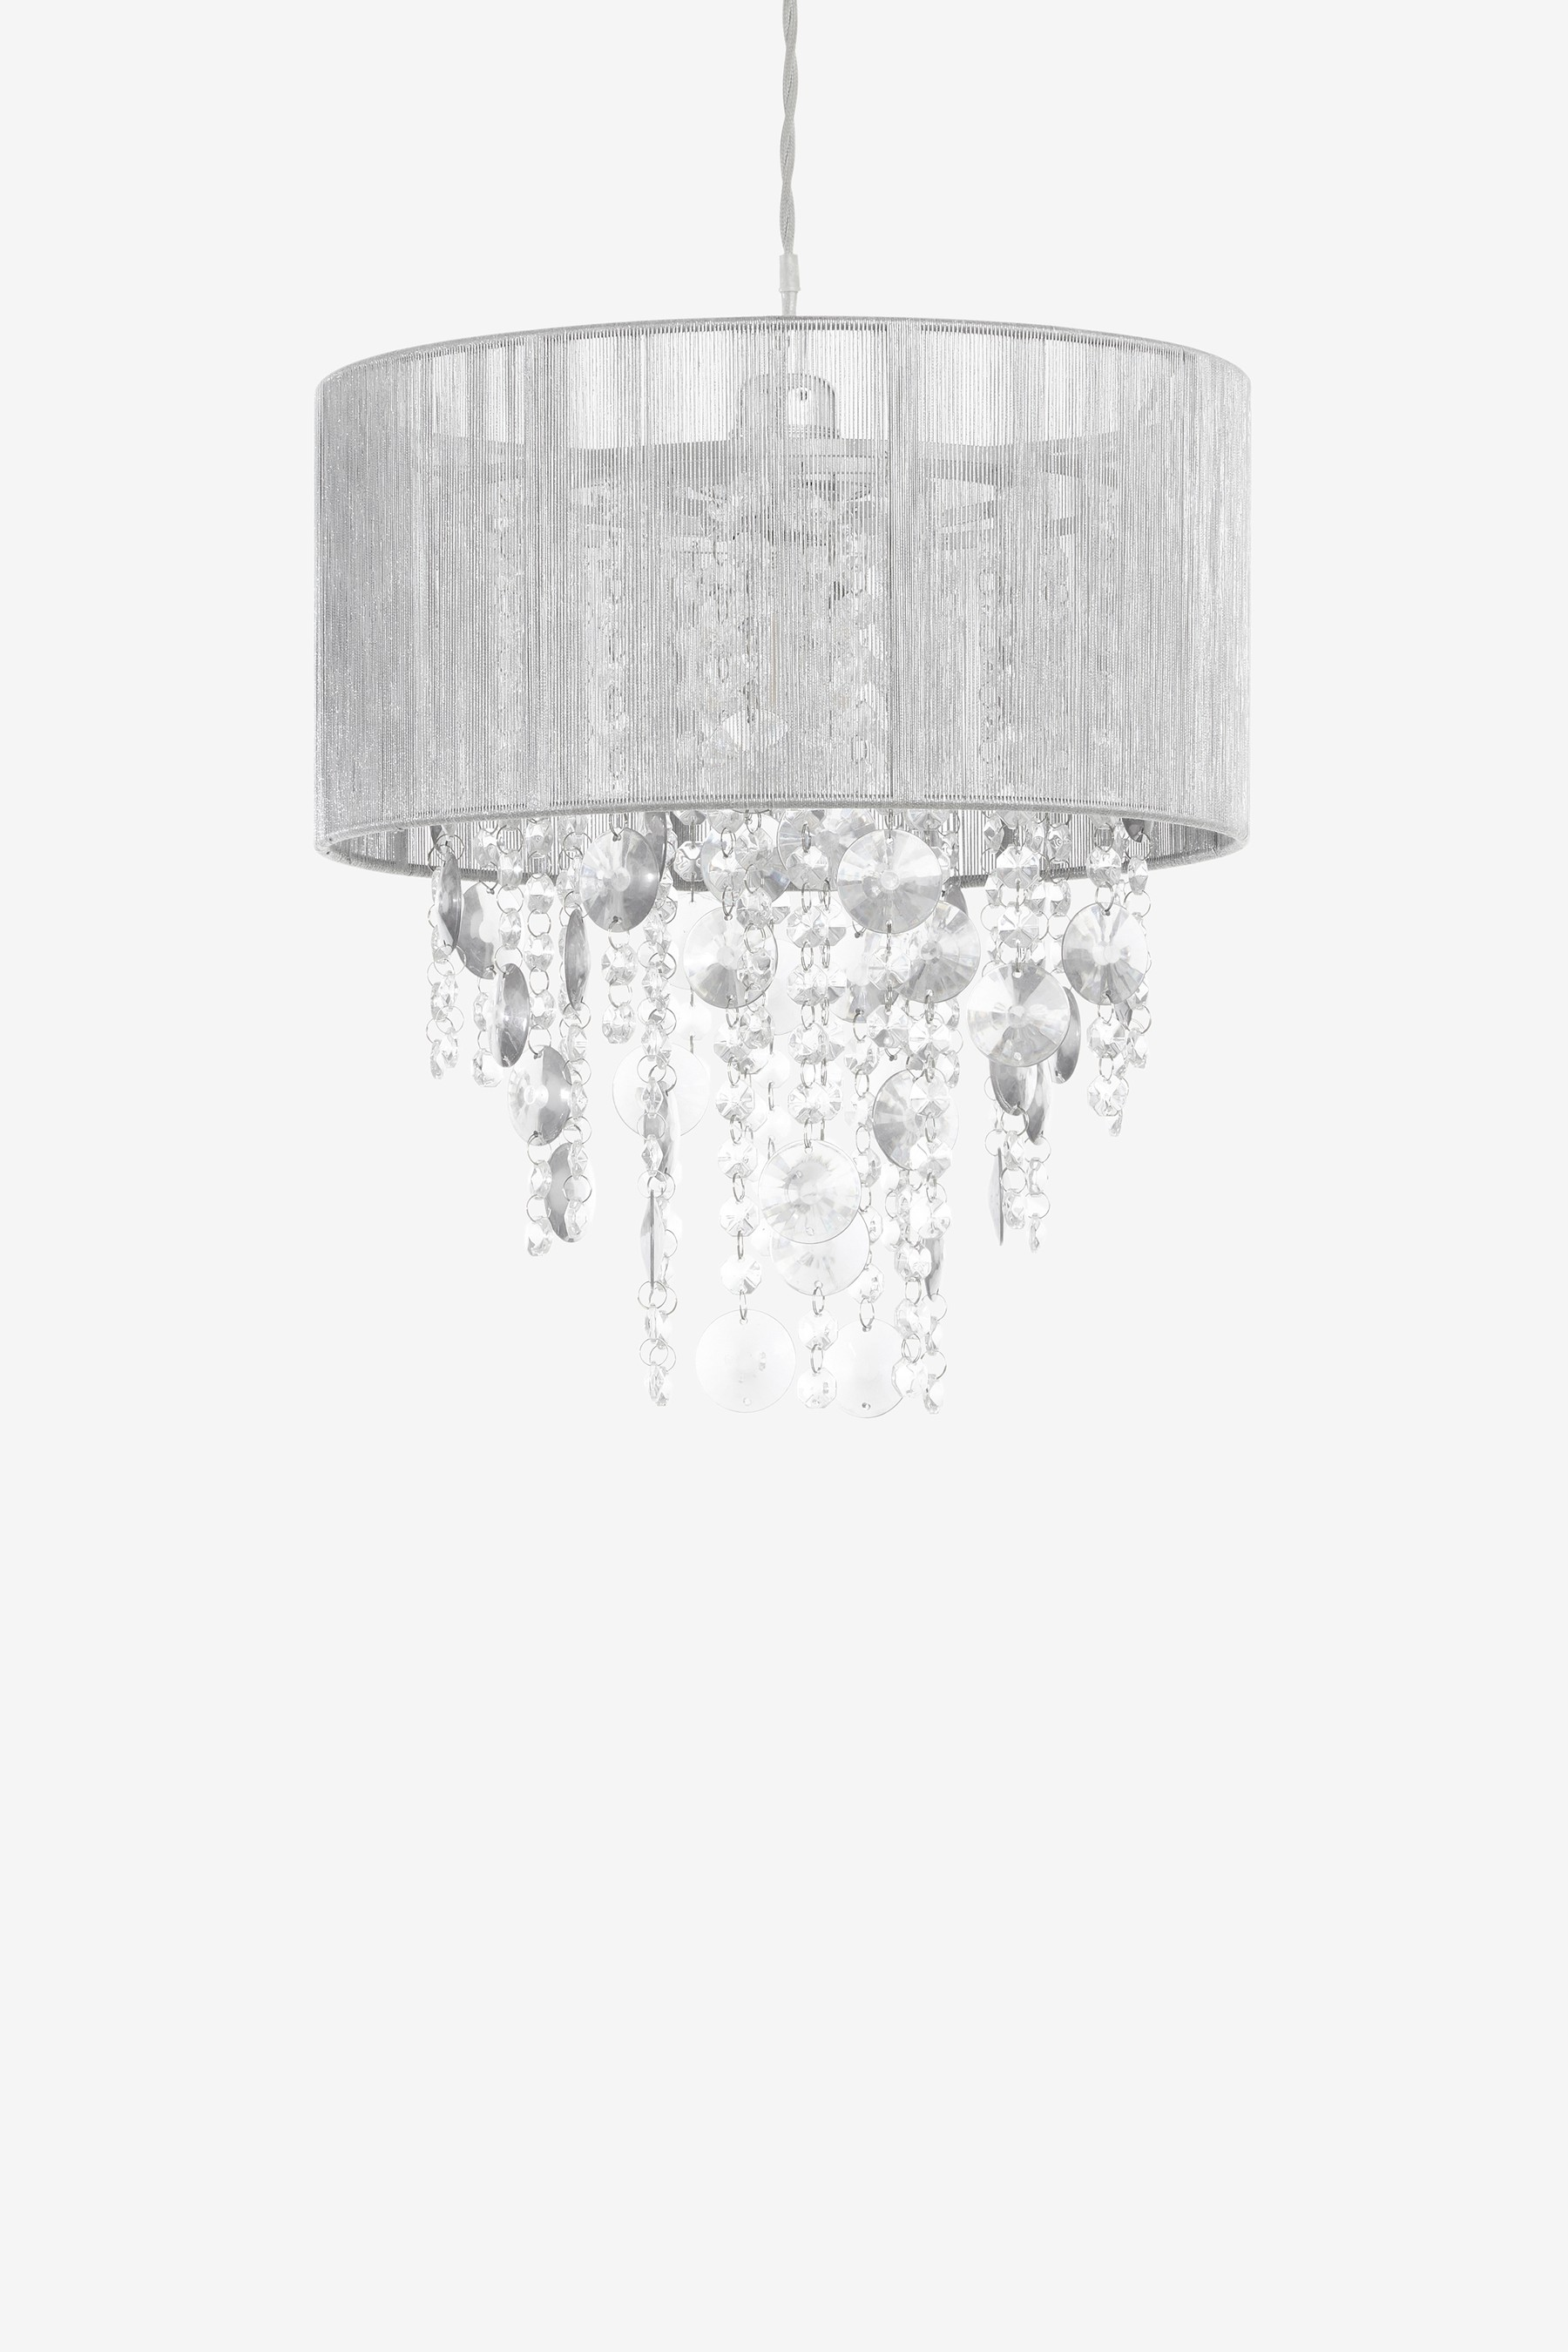 Next palazzo shadelier grey bluewater for How to make a chandelier out of a lamp shade